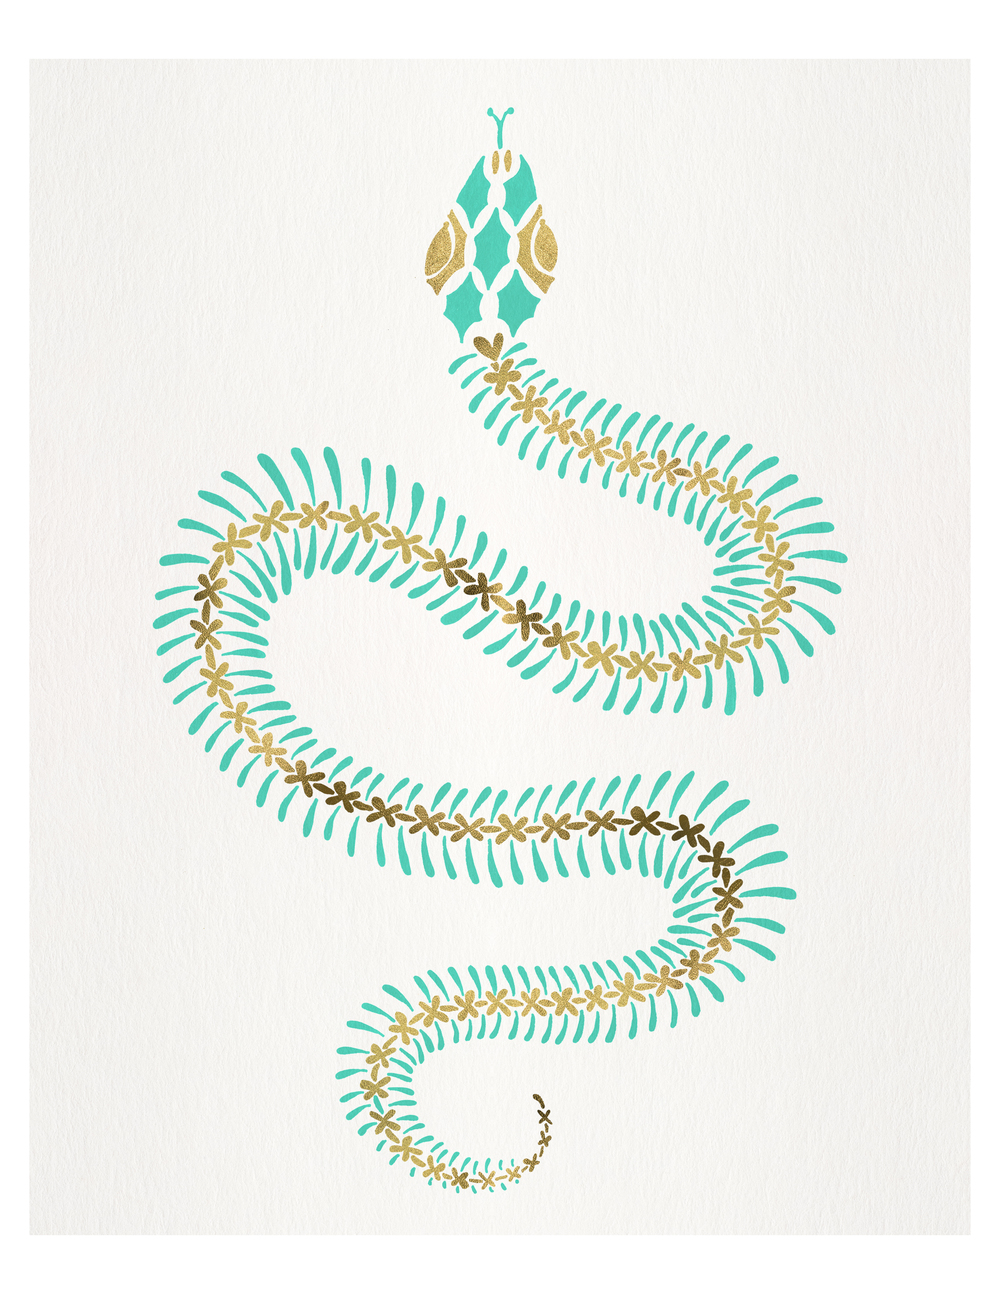 Serpent Skeleton available  here .